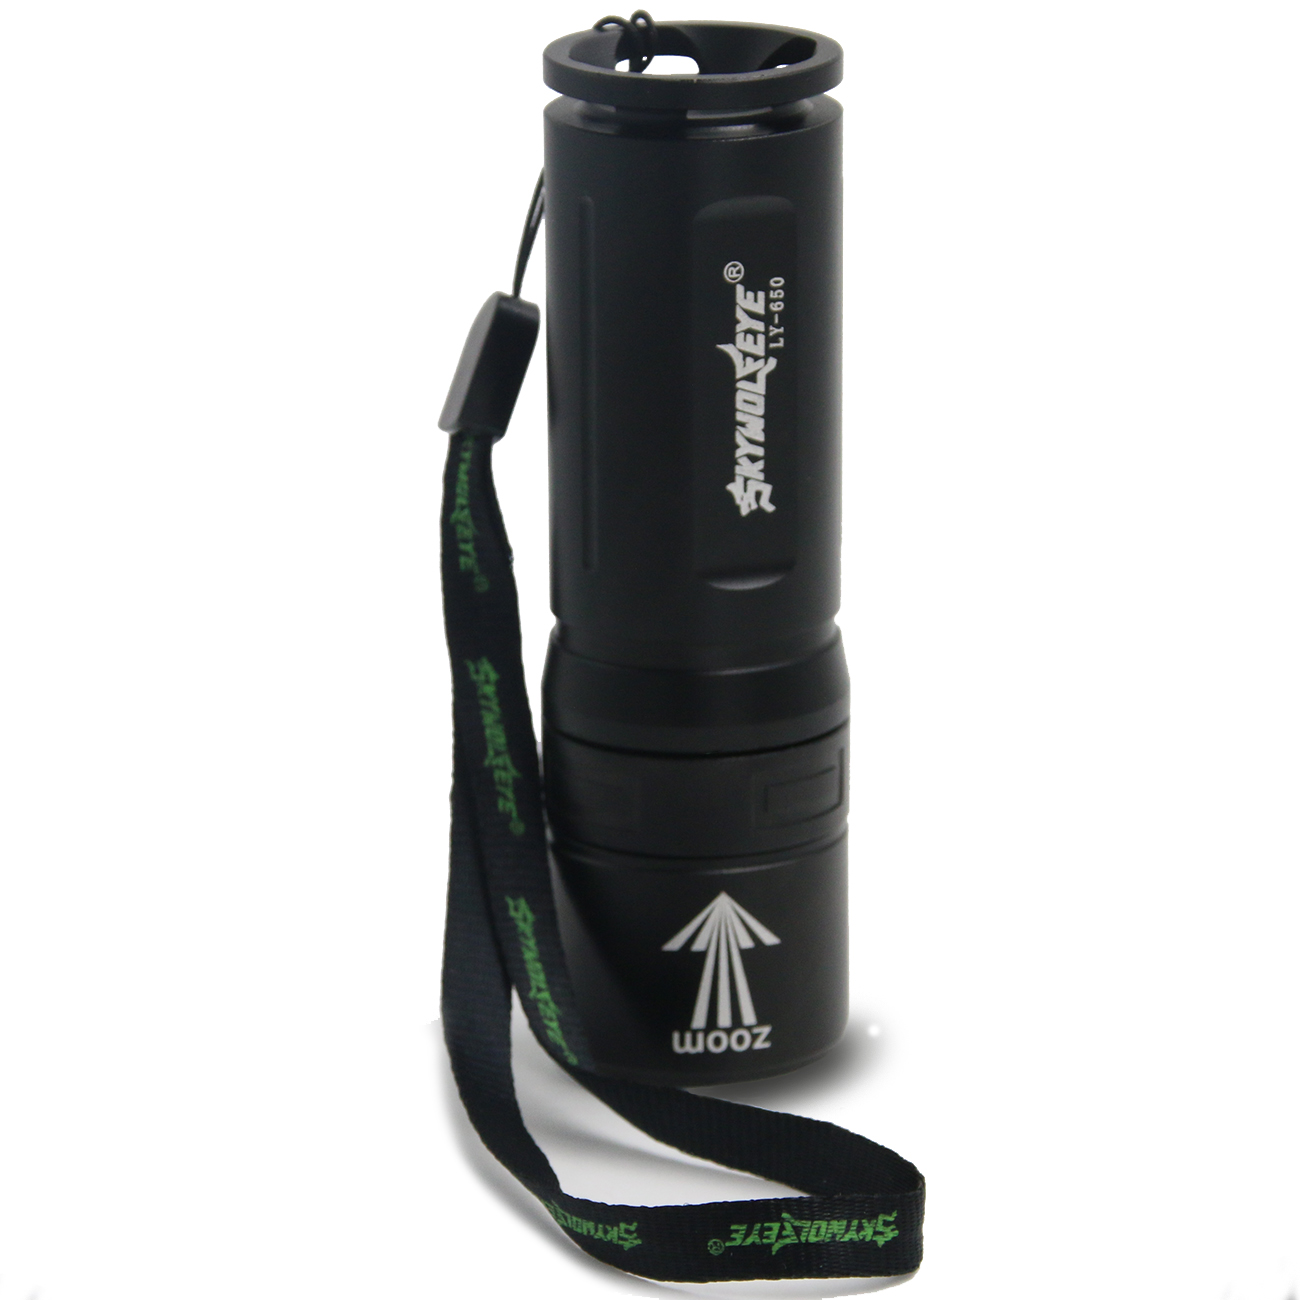 Portable LED Flashlight Torch 500LM 18650/26650 Flash Light for Outdoor Mountaineering Dedicated Flashlight P0